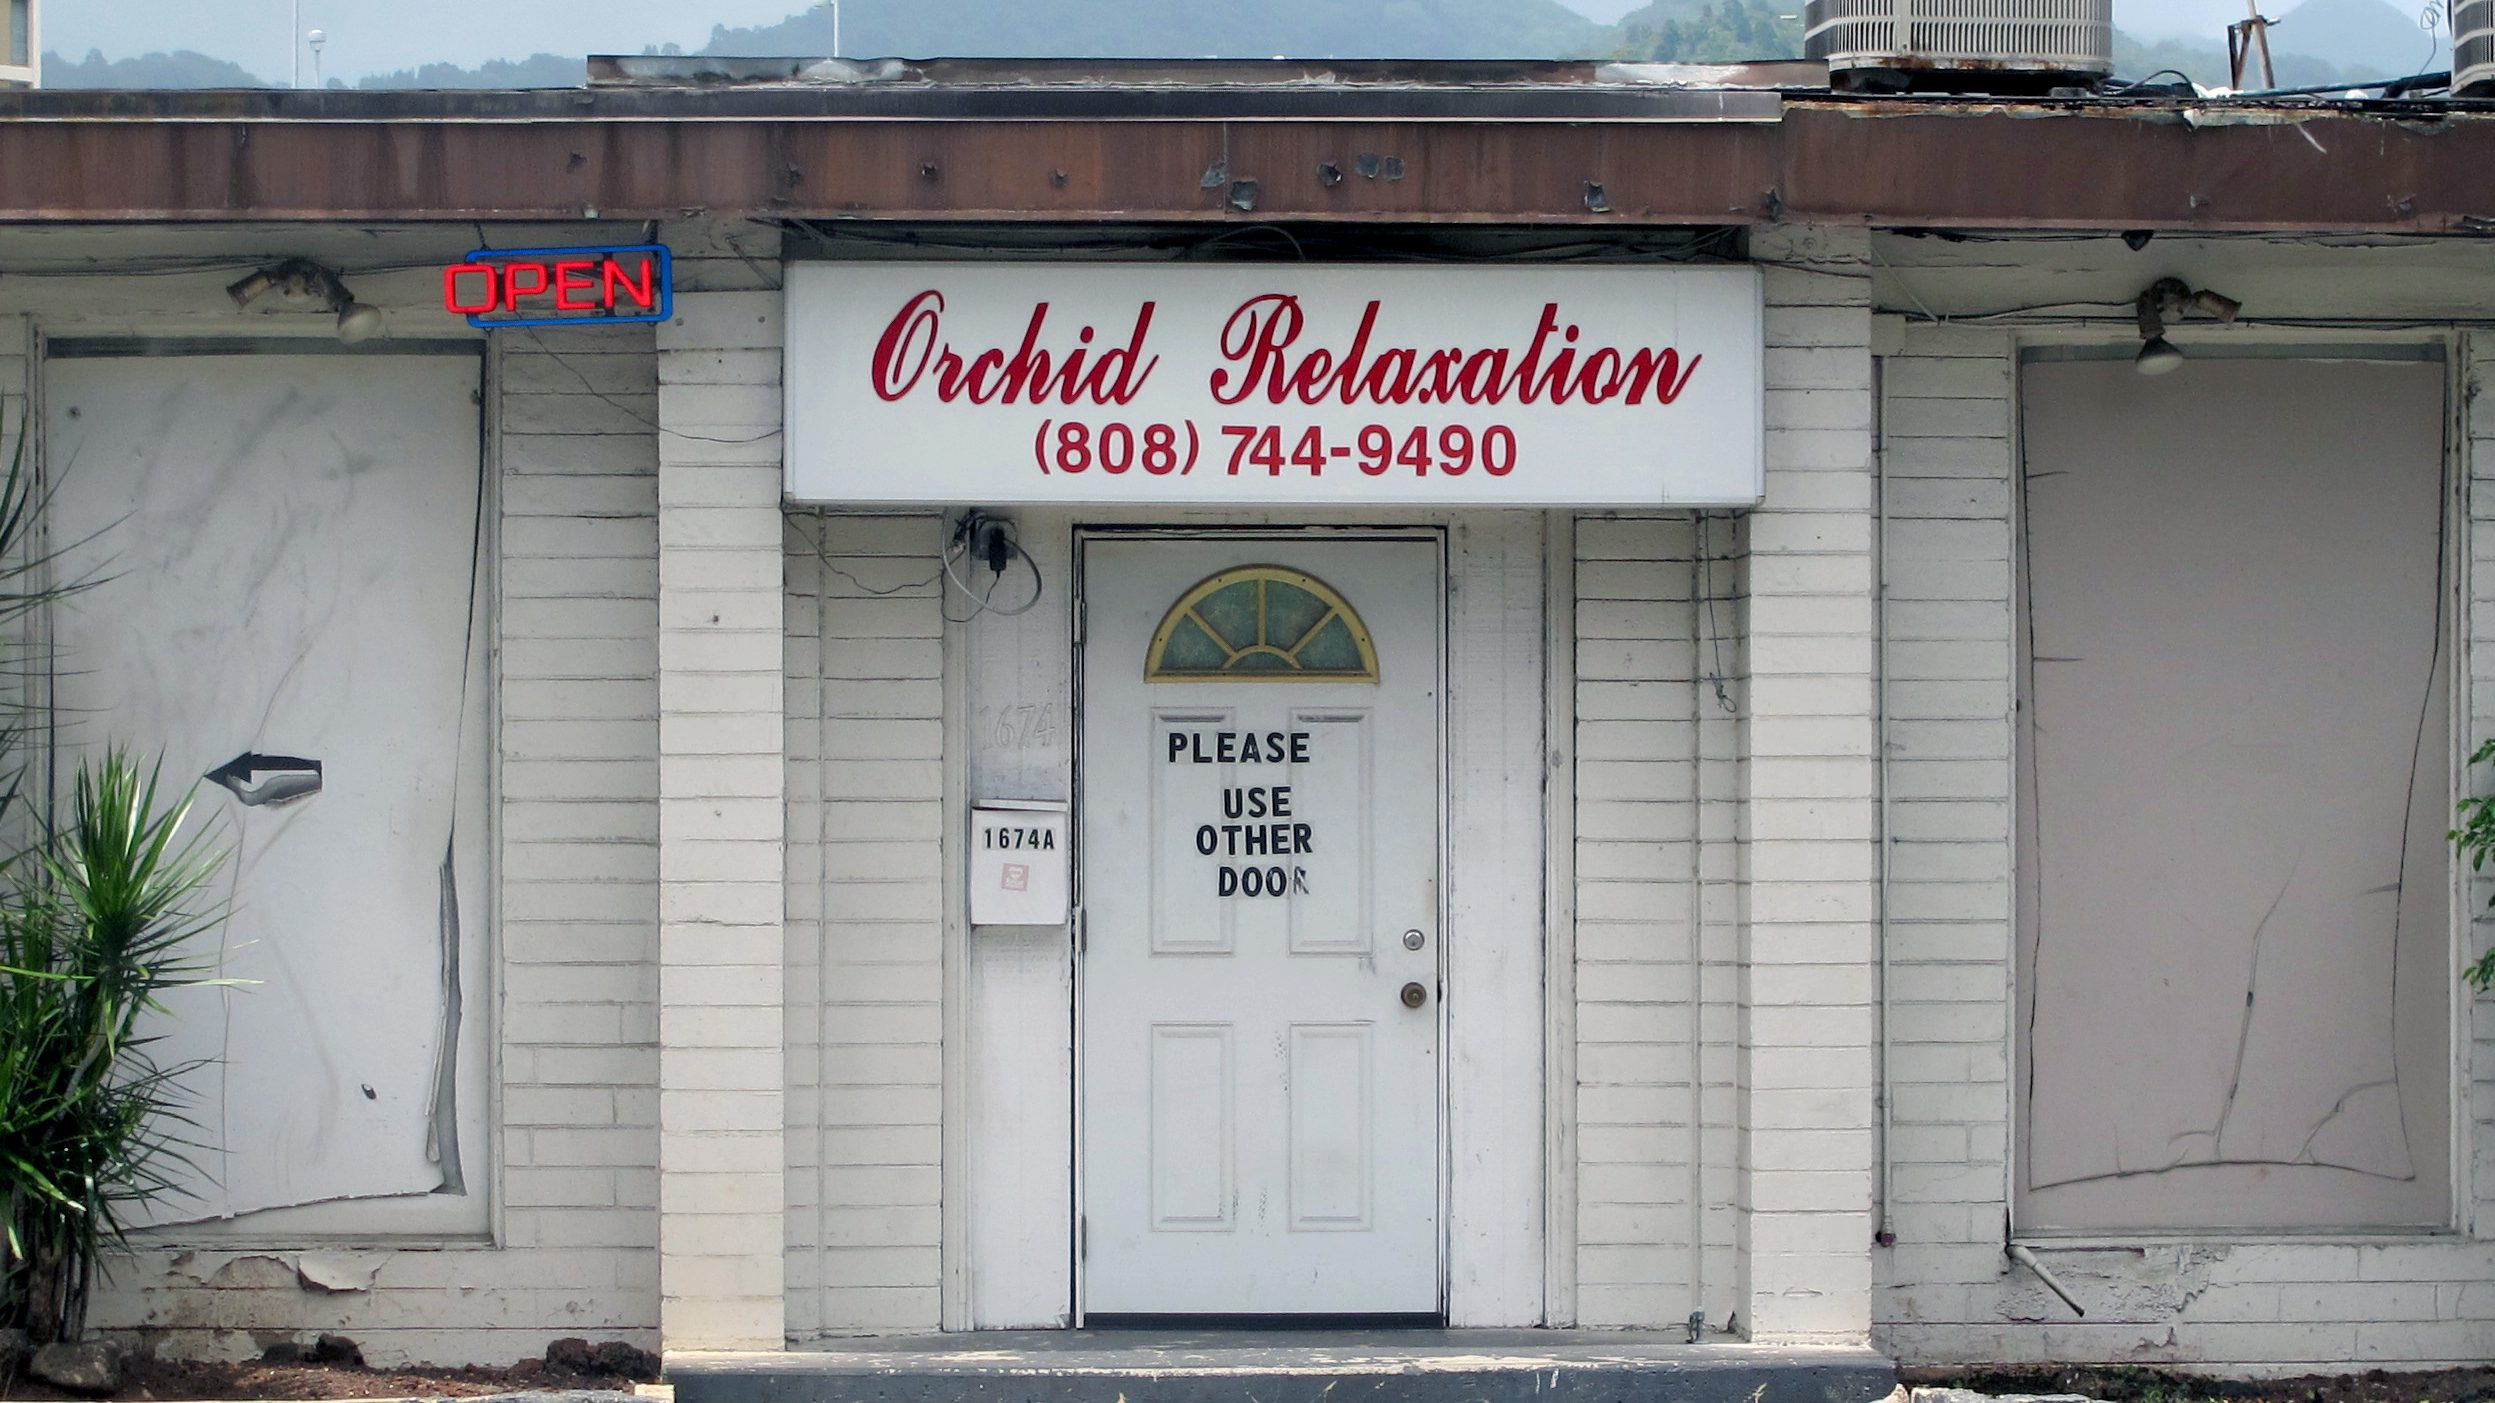 The $2.5 billion industry of human trafficking through massage parlors makes widespread use of shell companies.